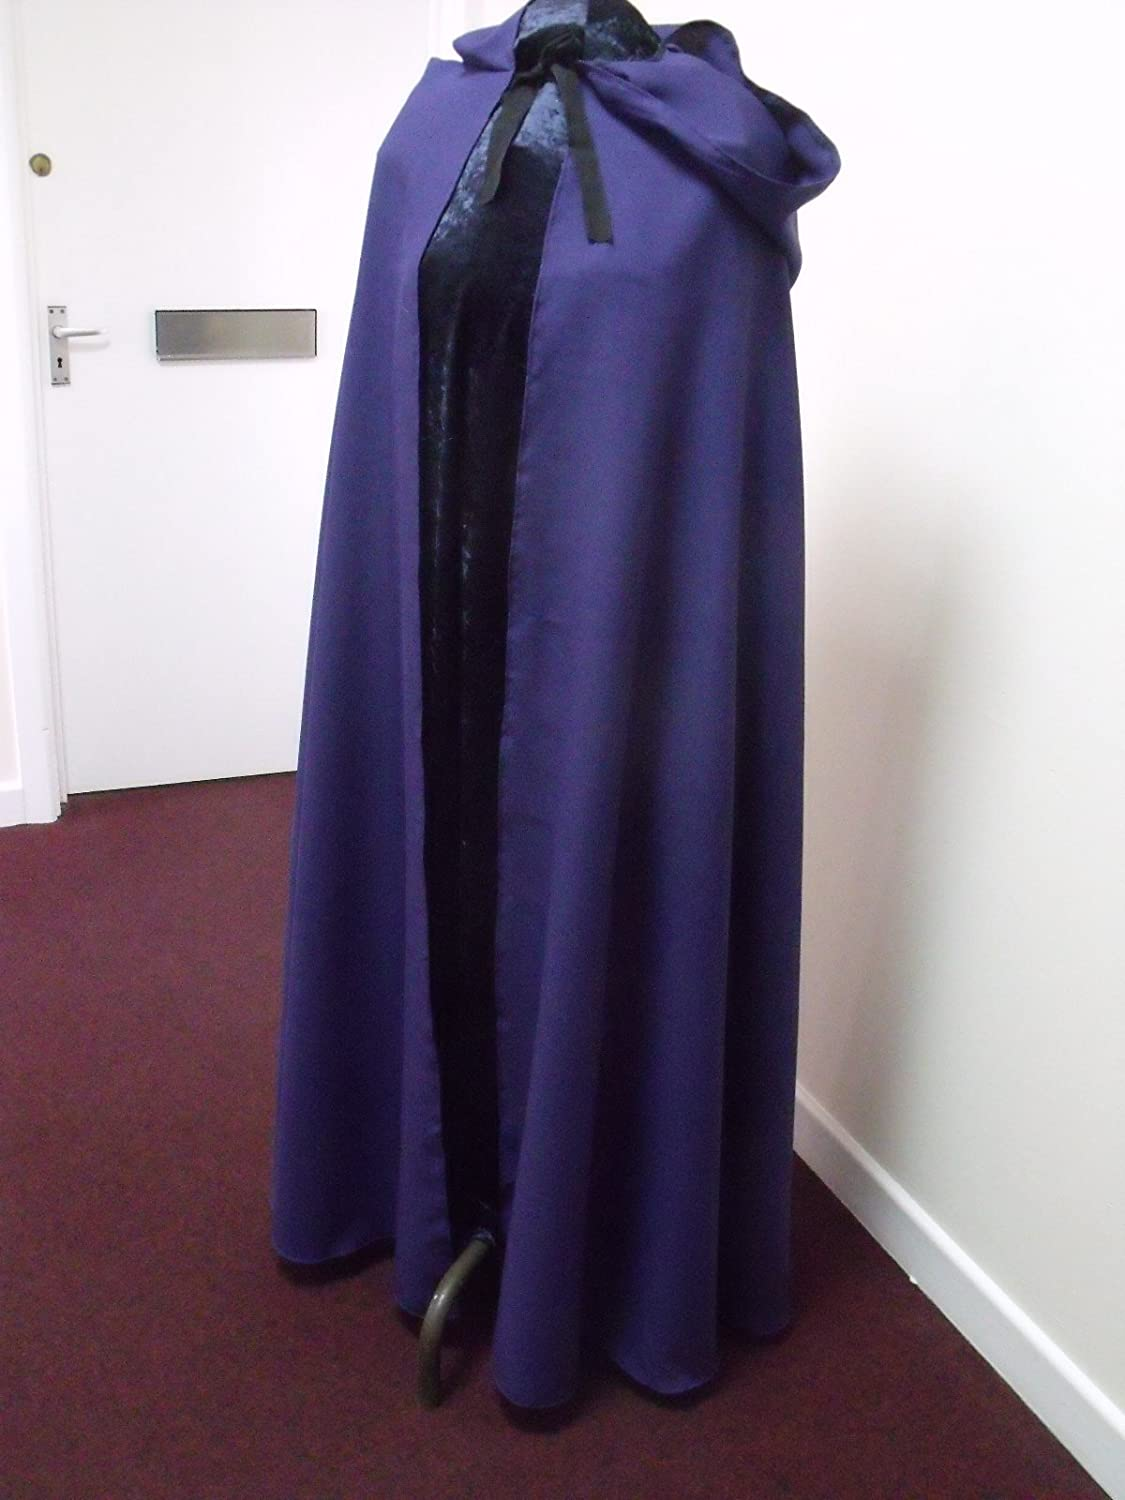 Purple Polyester Twill Adult Cloak - Legoslas/Frodo/Lord Of The Rings/LOTR/Pirate/Arwen/Pagan/Halloween by Merlins Medieval Closet